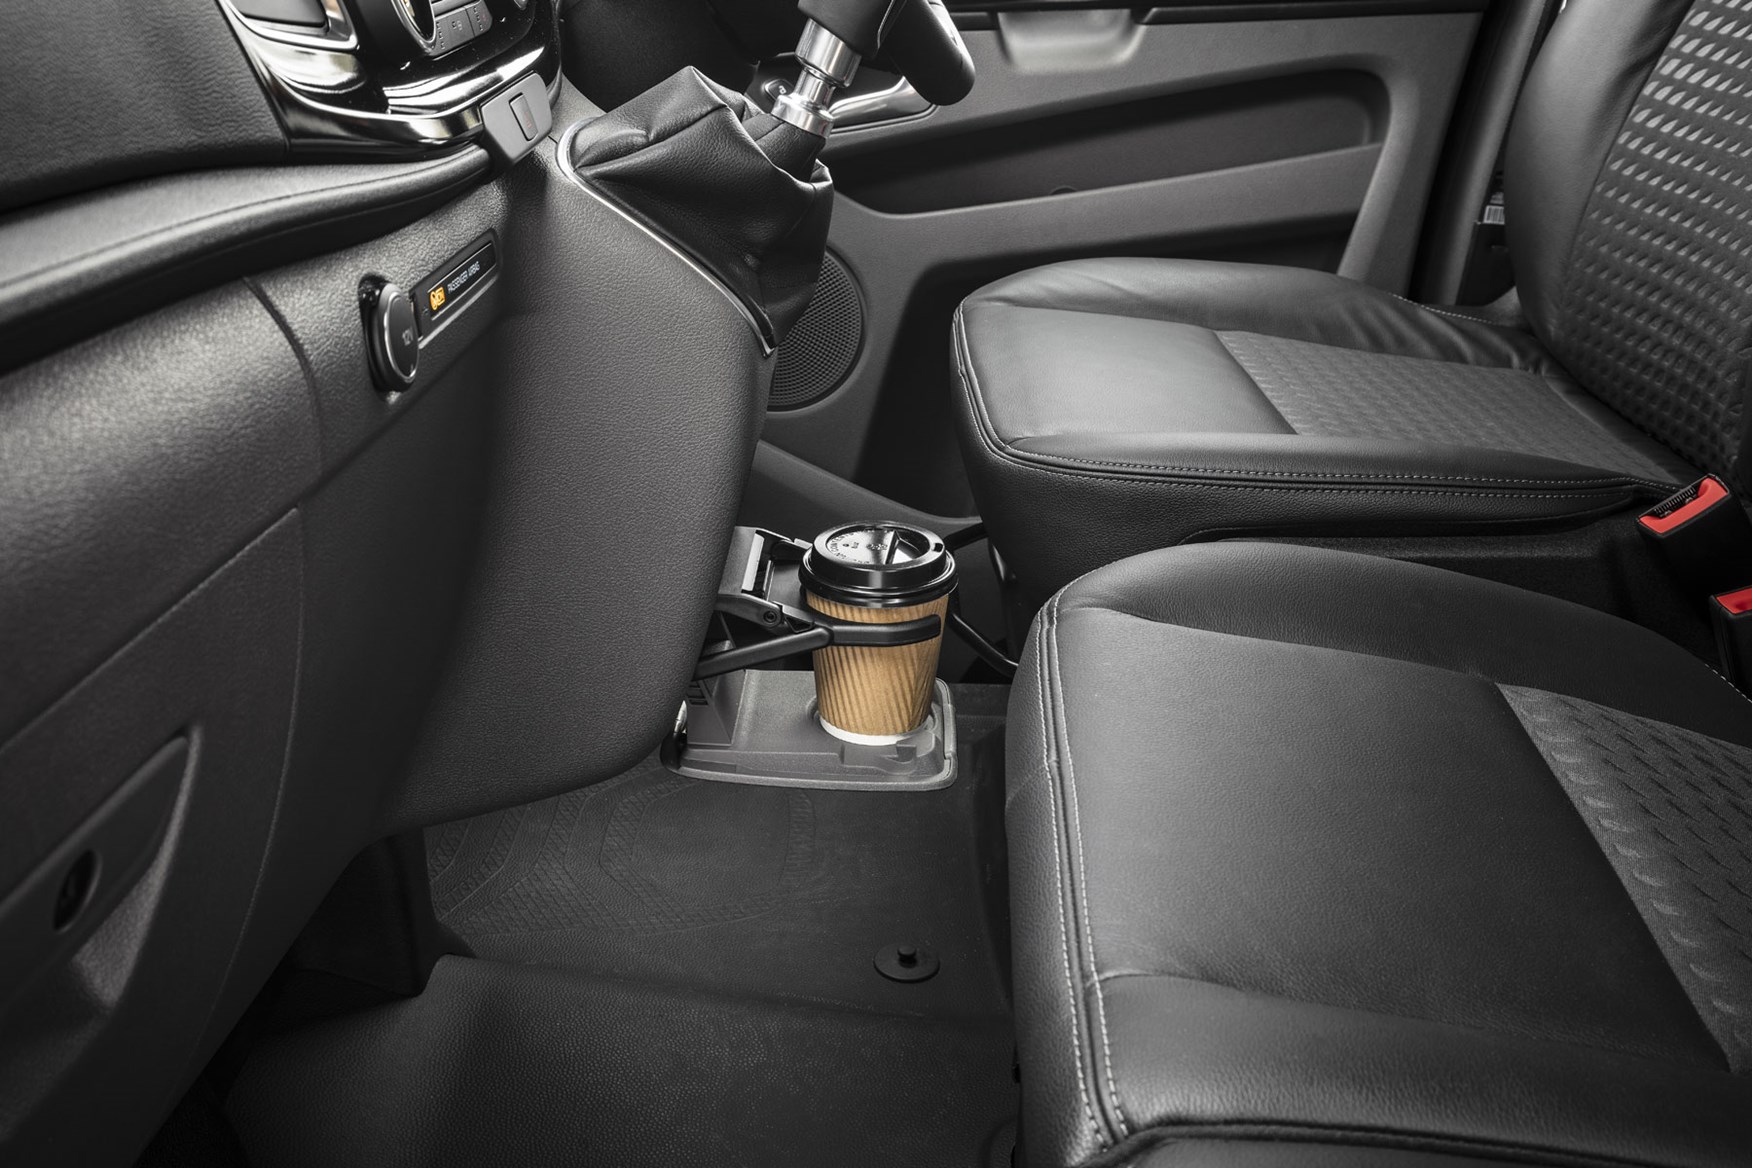 Ford Transit Custom review - 2018 post-facelift centre cupholder